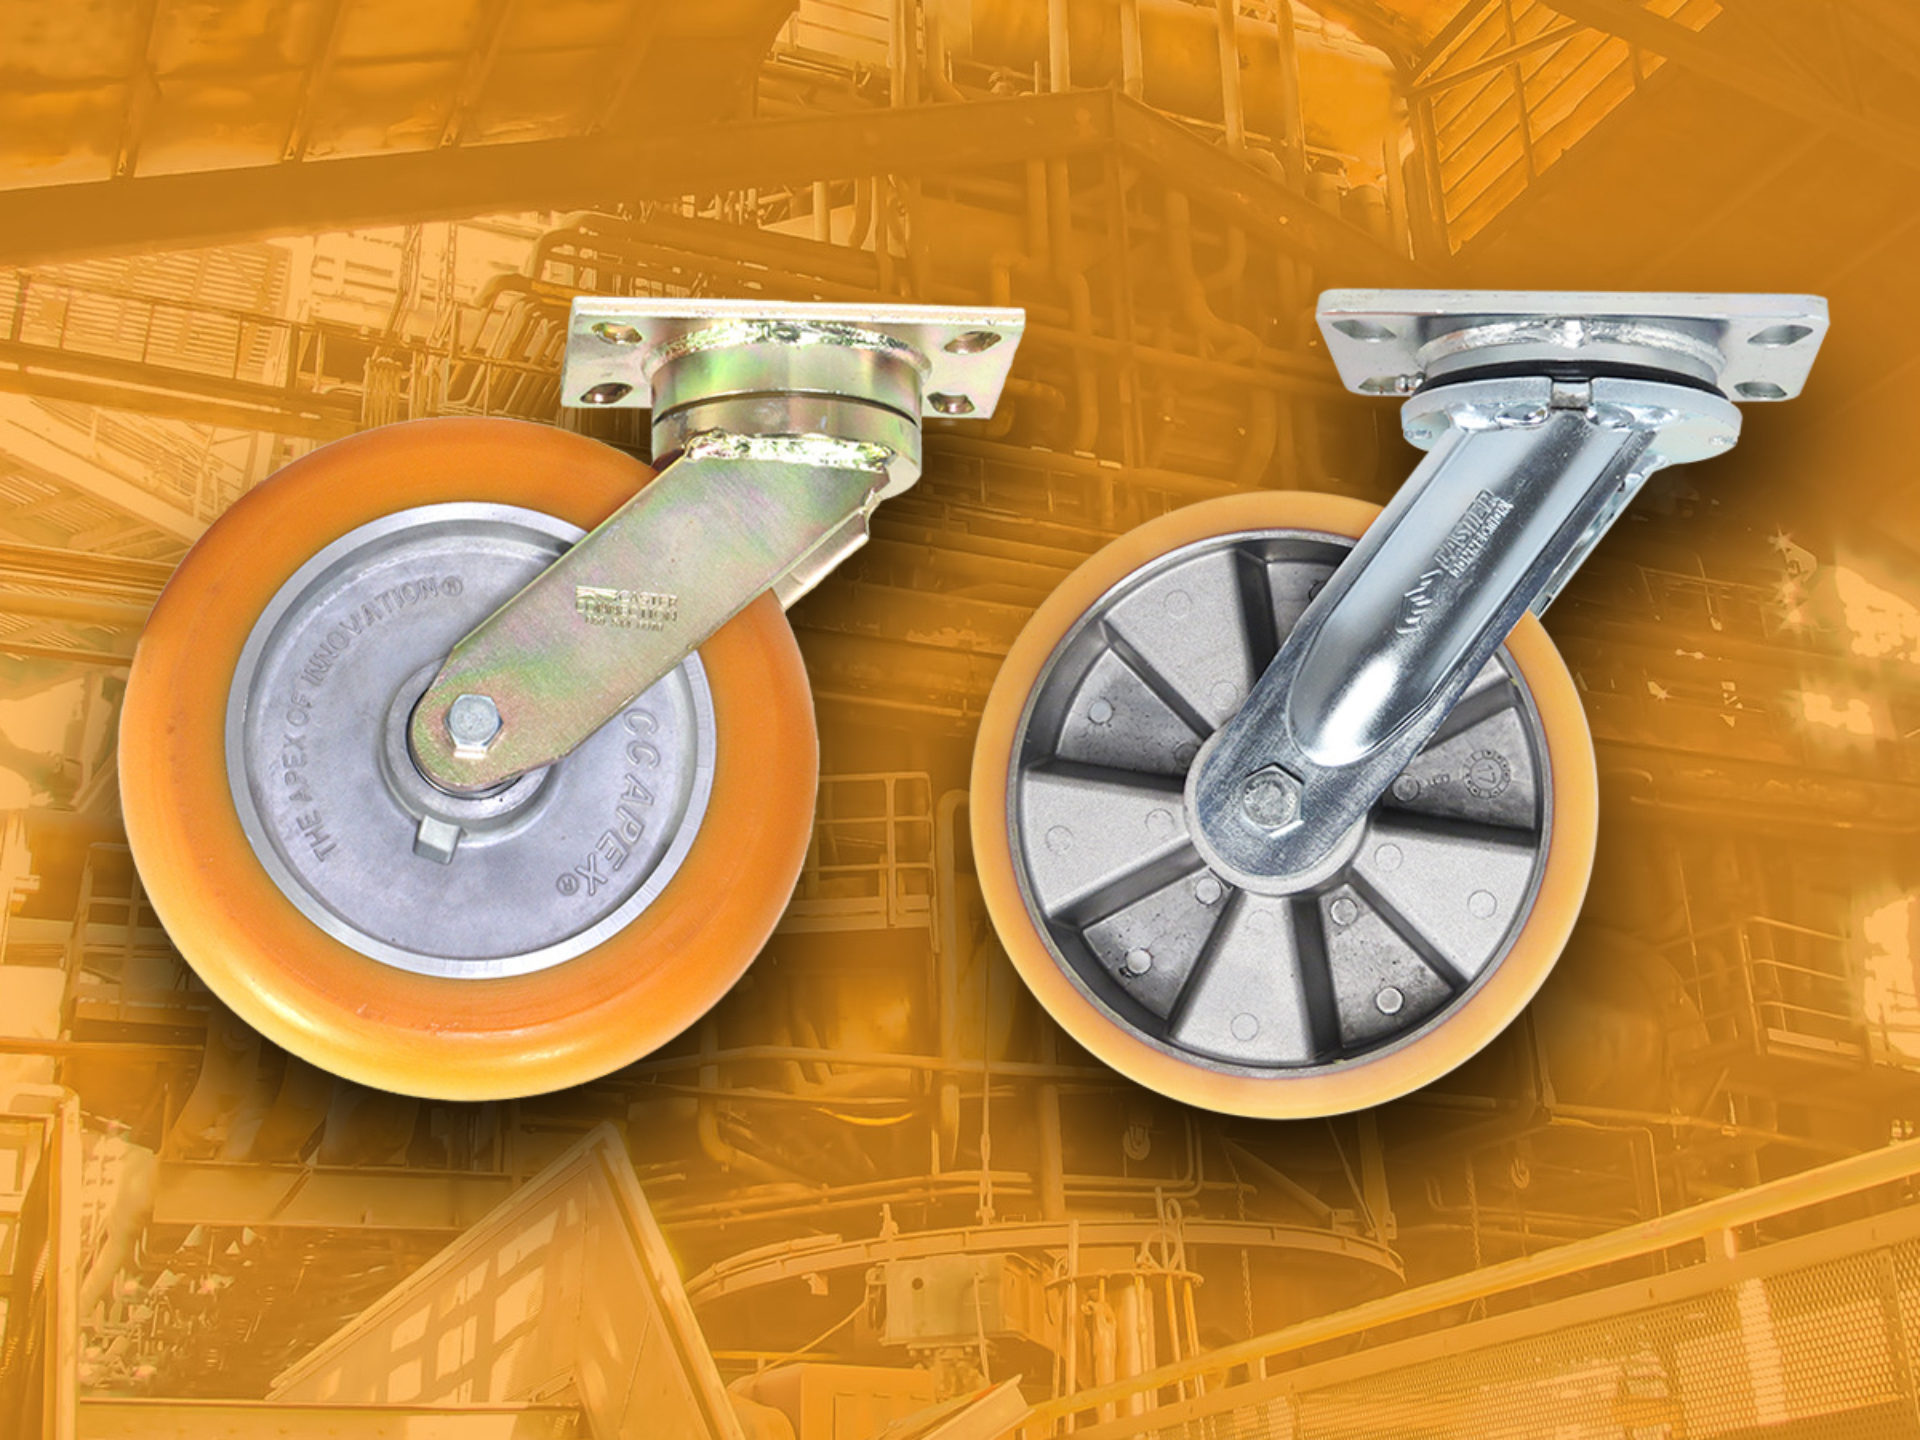 Looking for a reliable industrial caster manufacturer?